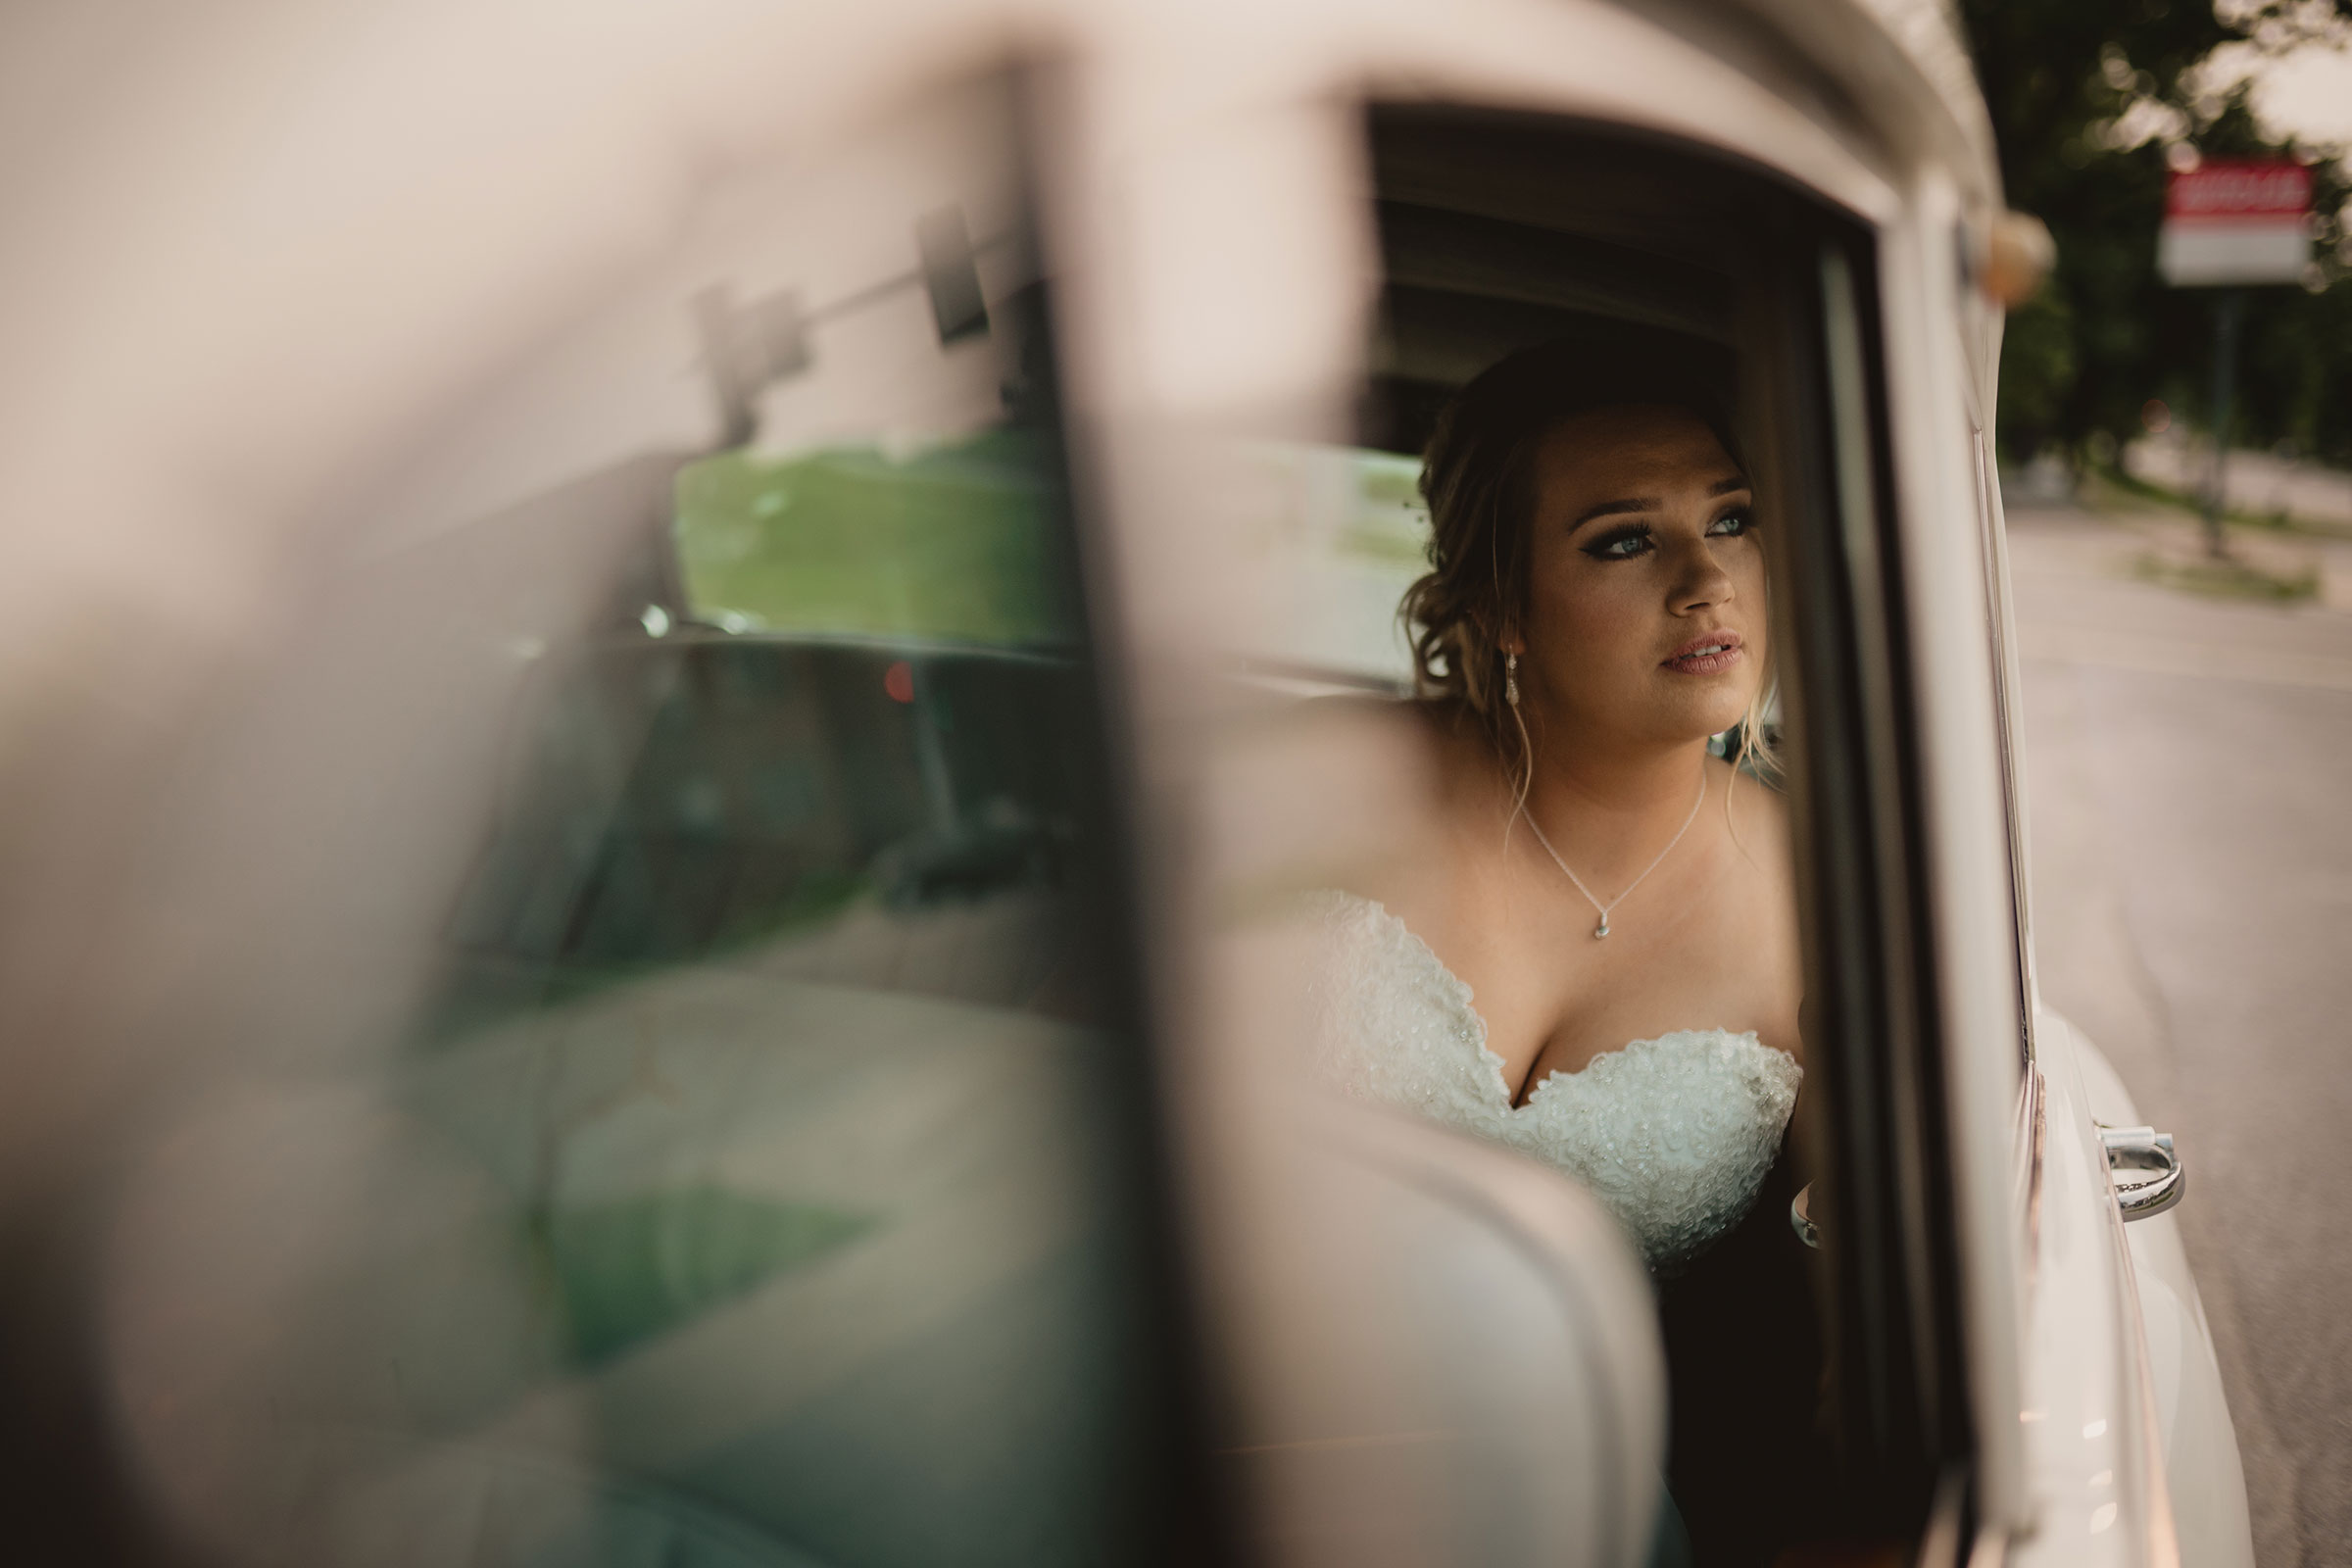 bride-looking-out-rolls-royce-window-decades-event-center-building-desmoines-iowa-raelyn-ramey-photography.jpg